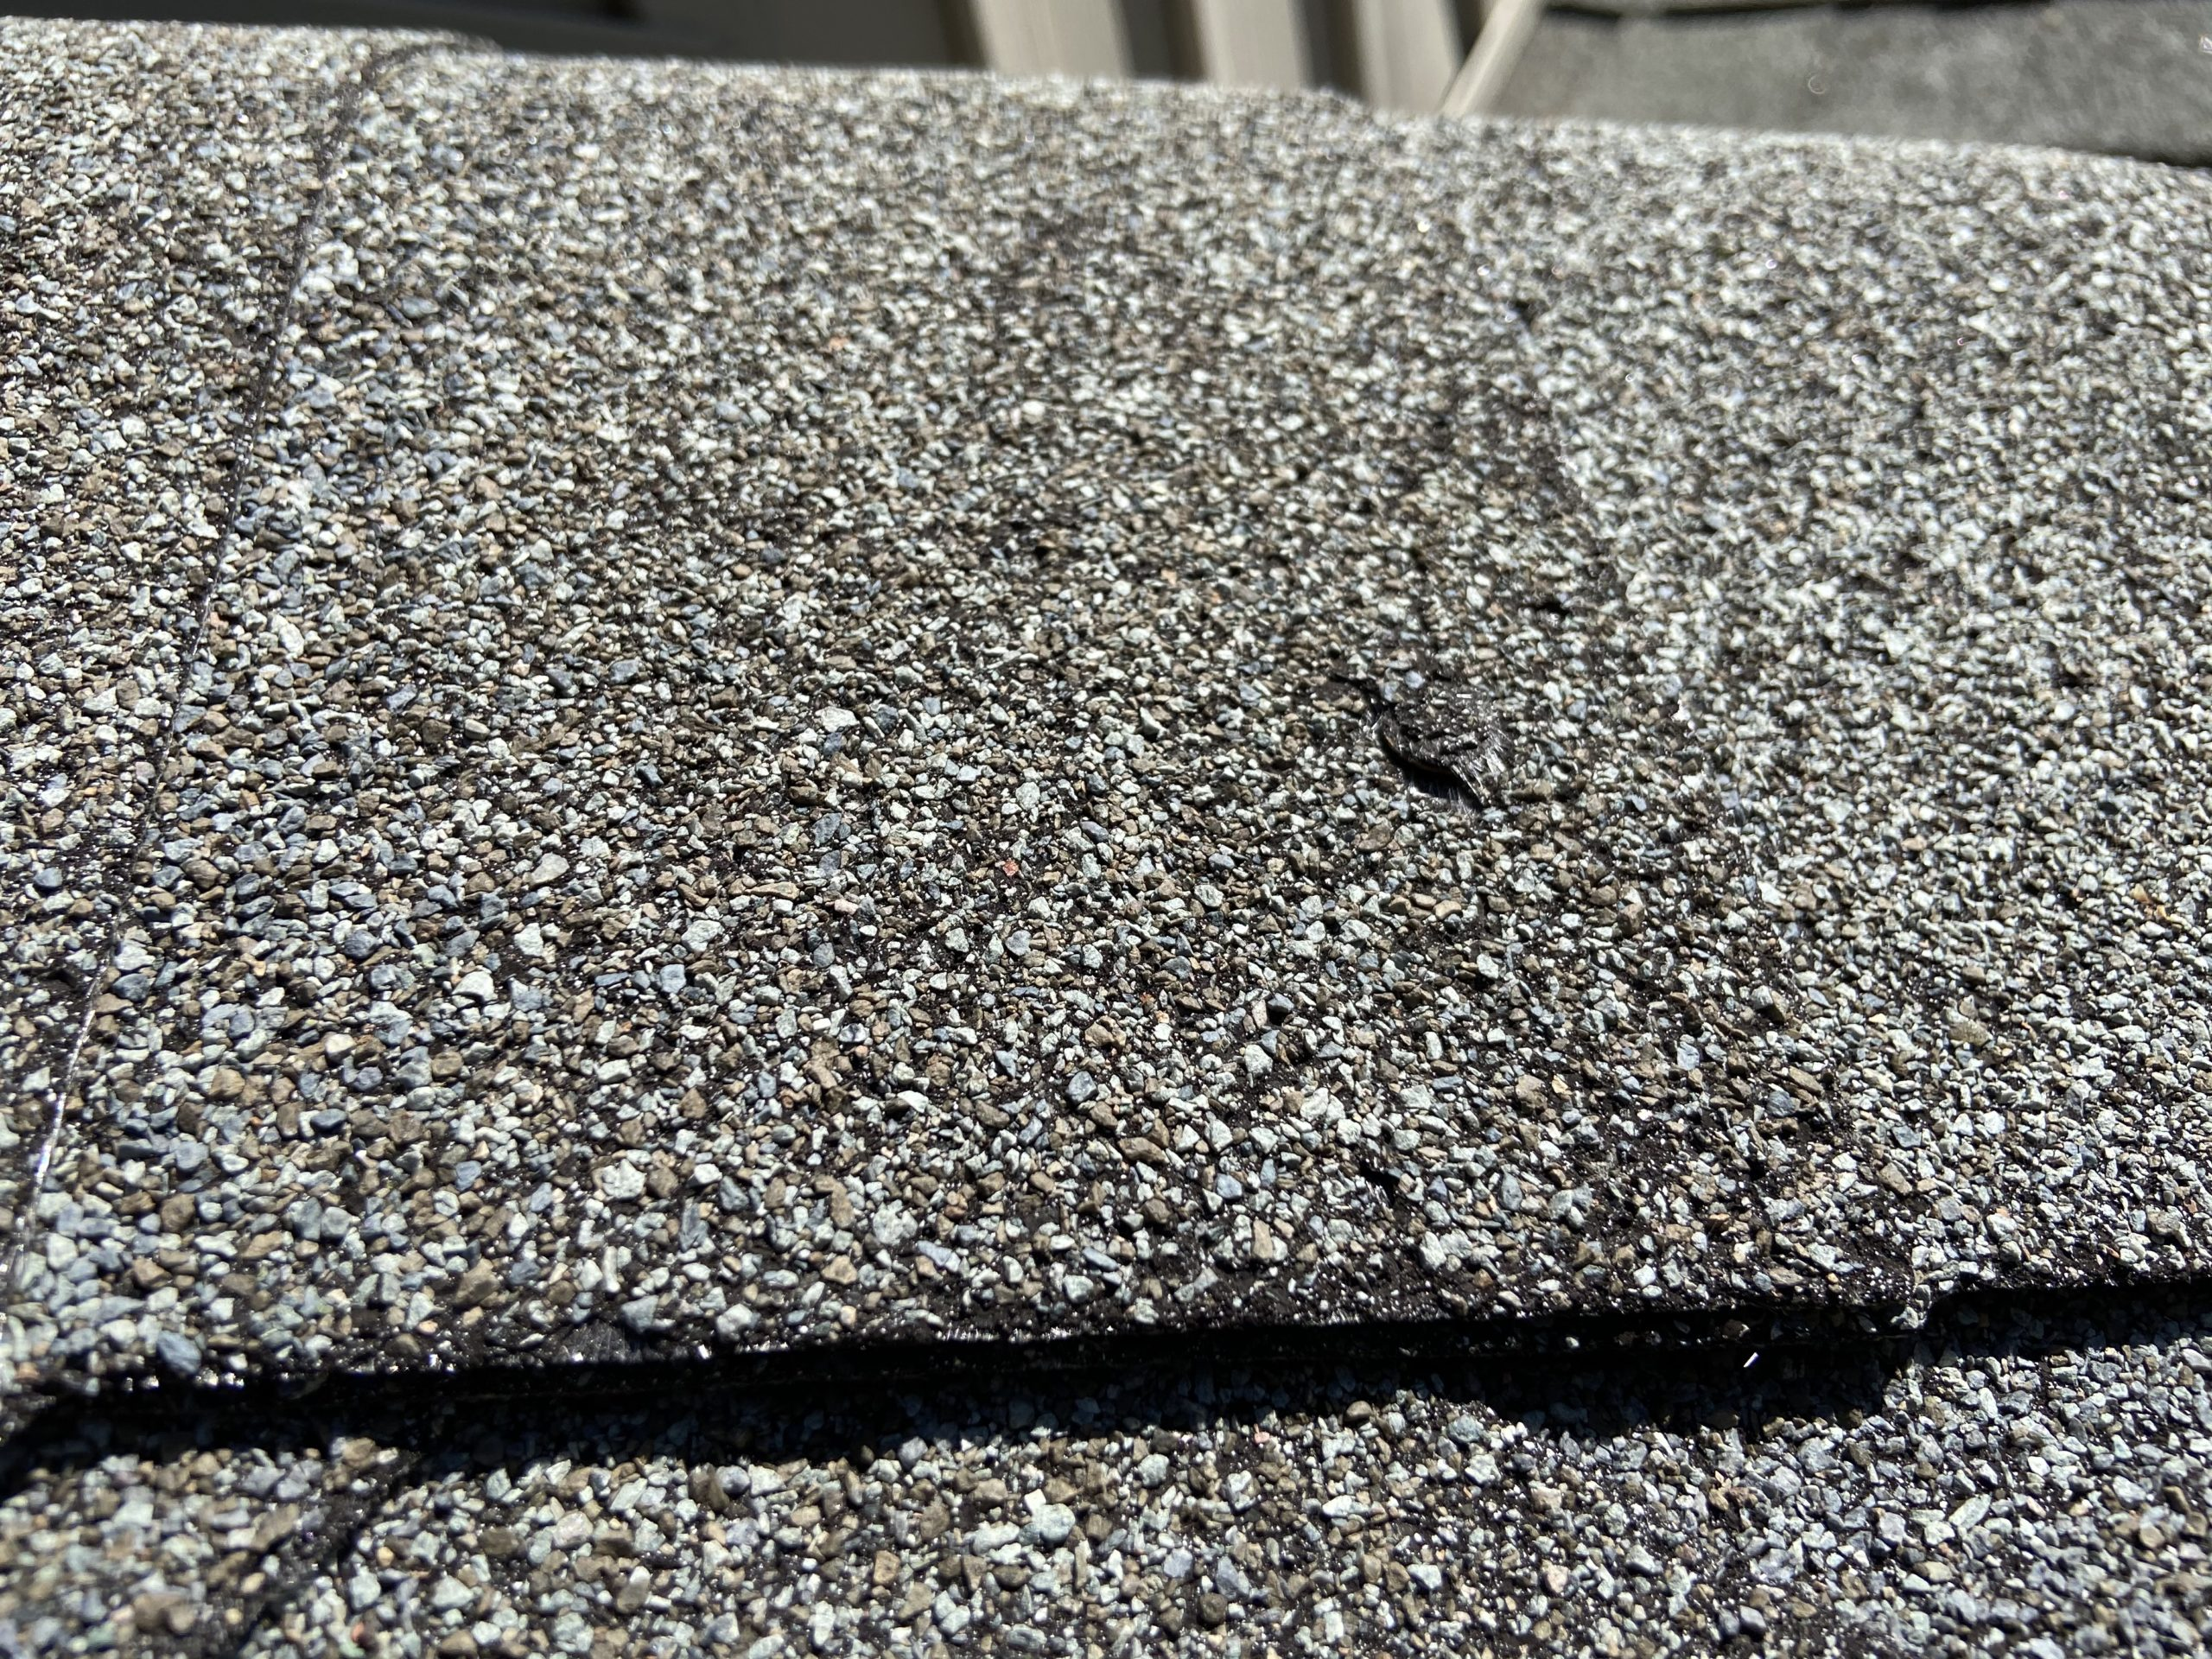 This is a very close view of a ridge cap shingle that is damaged.